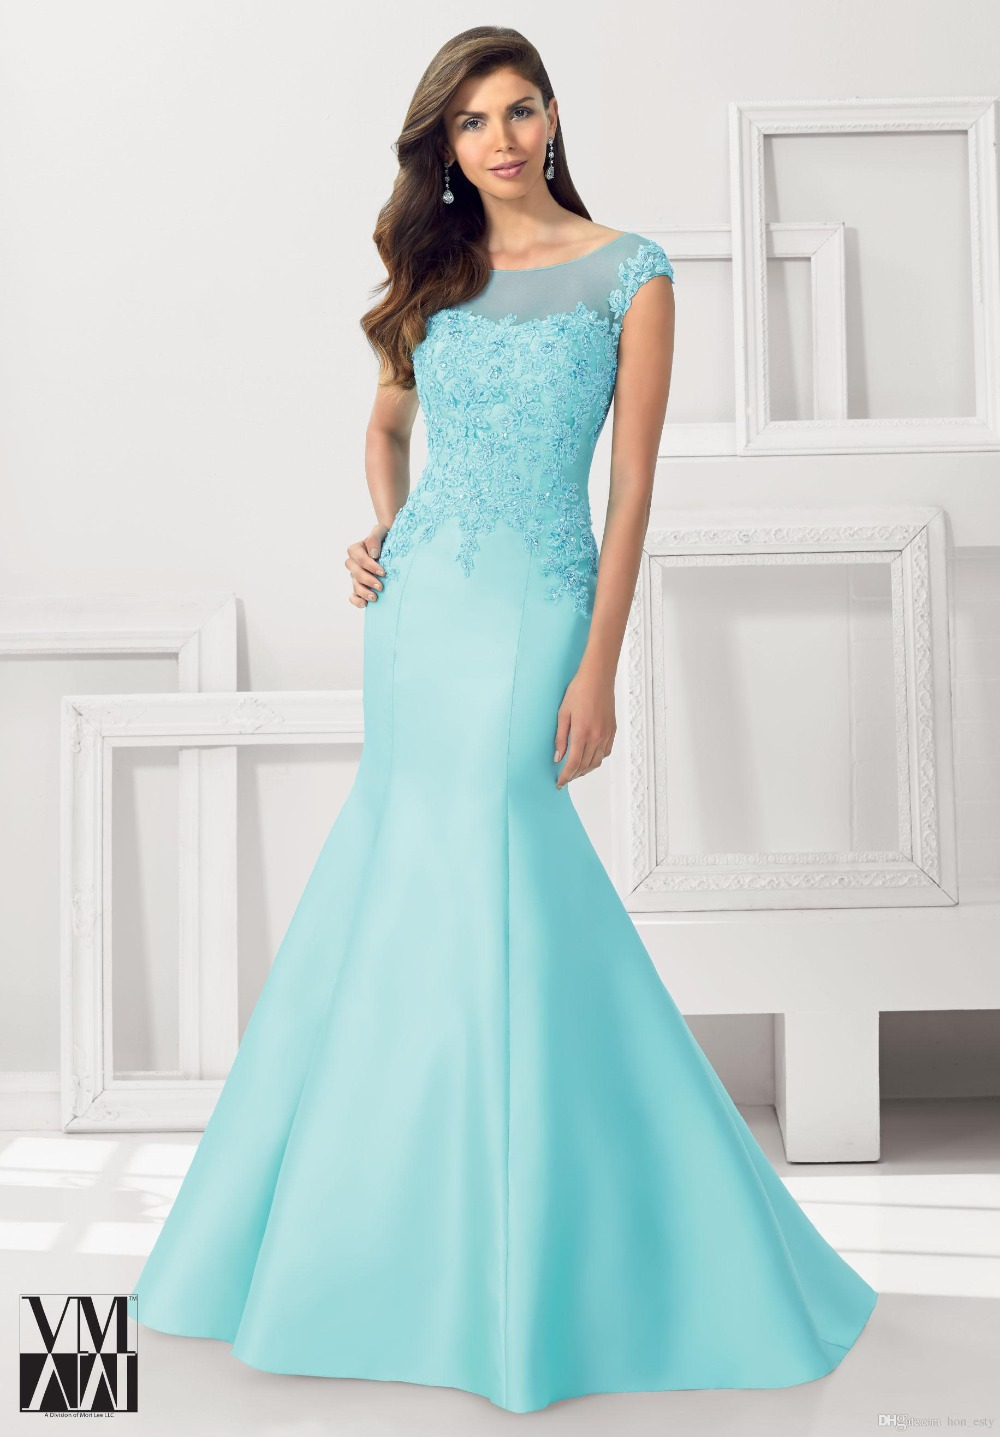 vestidos para la madre de la novia 2016 Mermaid Mother of The Bride Dresses Sky Blue Scoop Sleeveless Appliques V Back Long Gown-in Mother of the ...